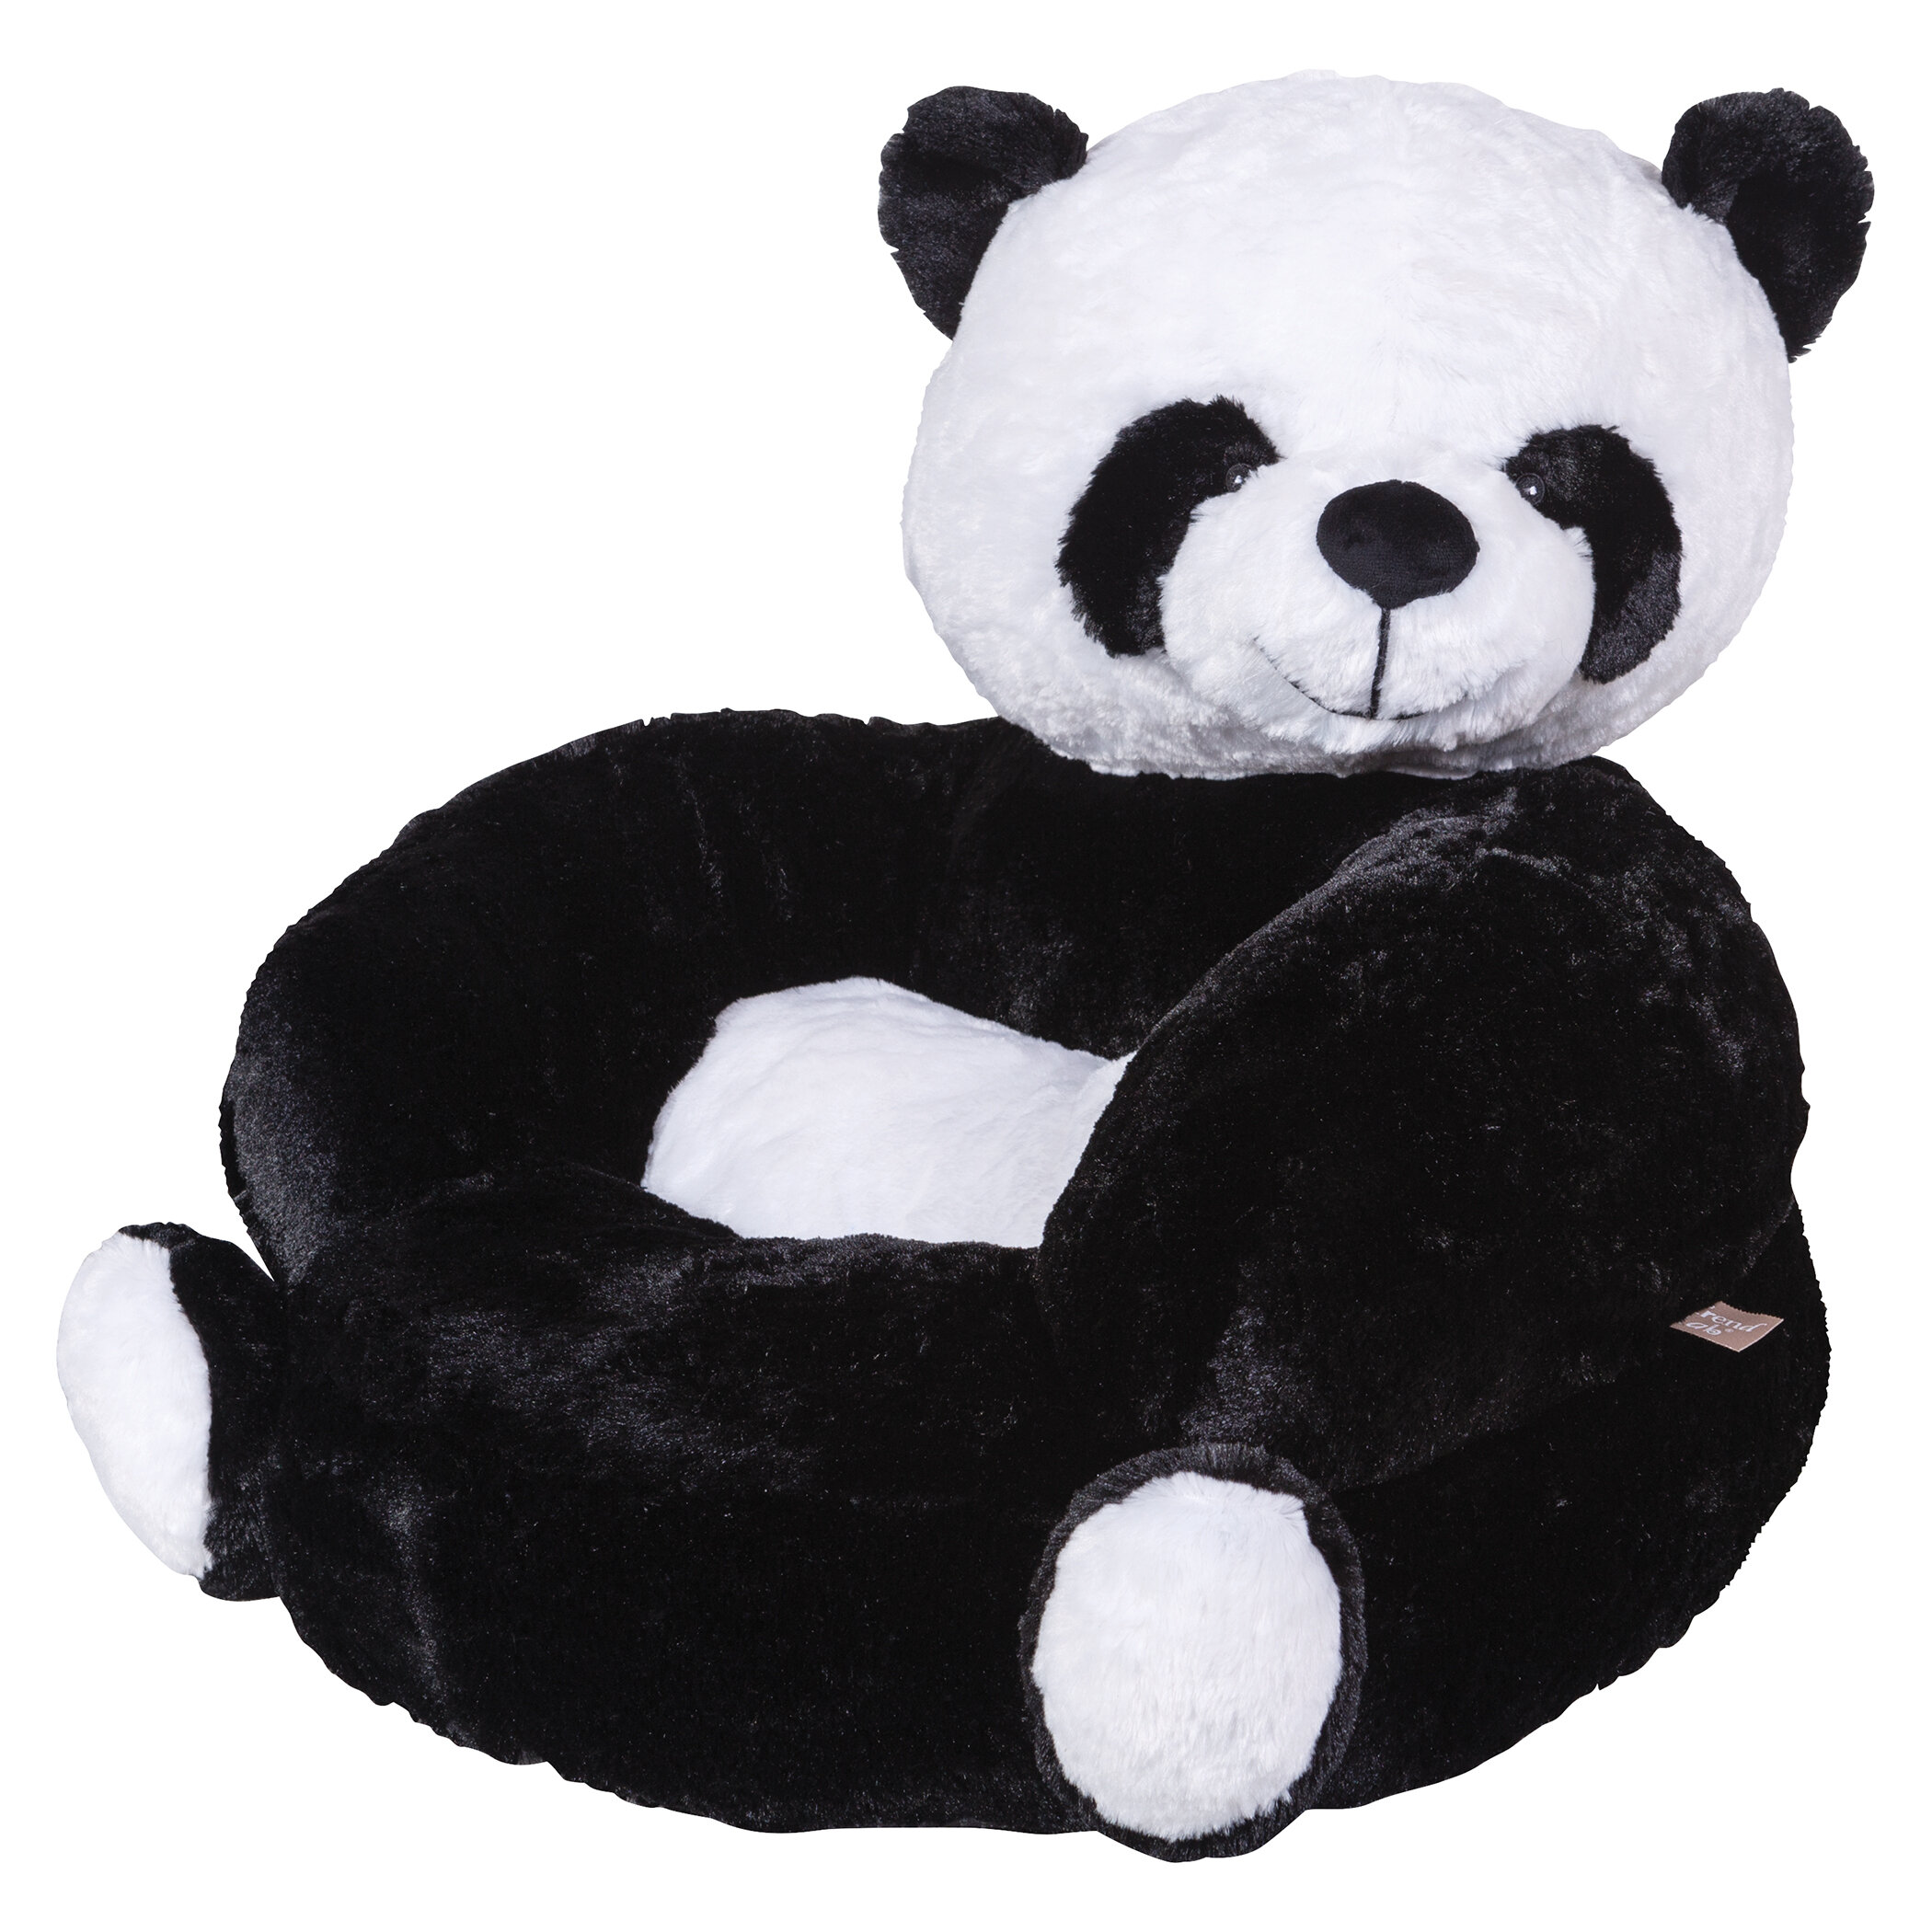 Marvelous Vandenberg Plush Panda Character Kids Faux Fur Chair Gmtry Best Dining Table And Chair Ideas Images Gmtryco